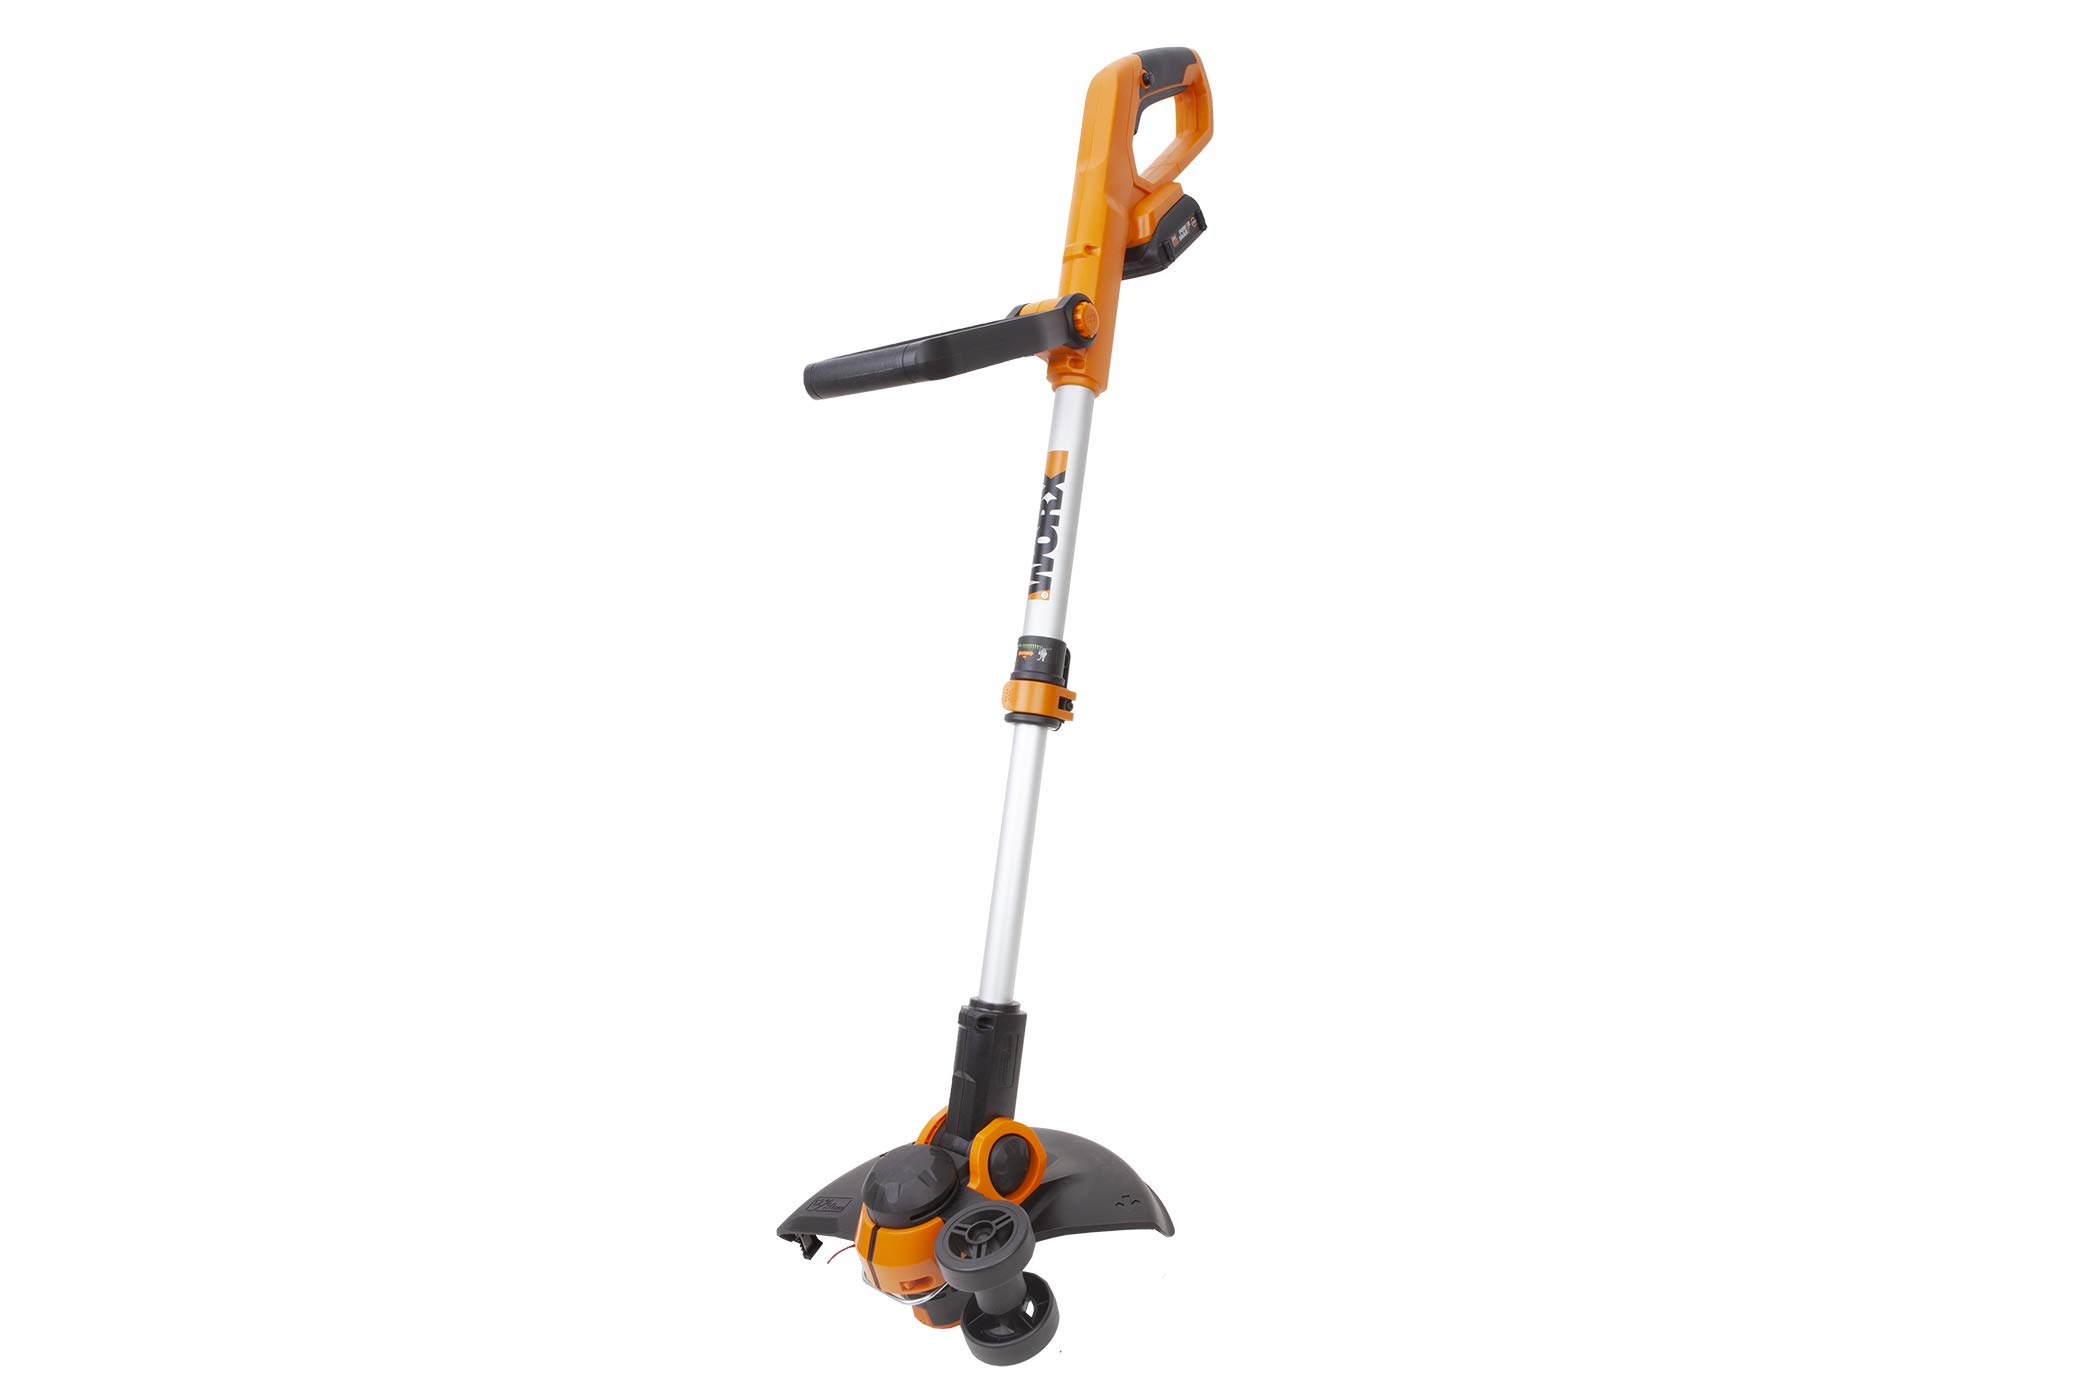 Worx WG162 20V 12'' Cordless String Trimmer/Edger, Battery and Charger included